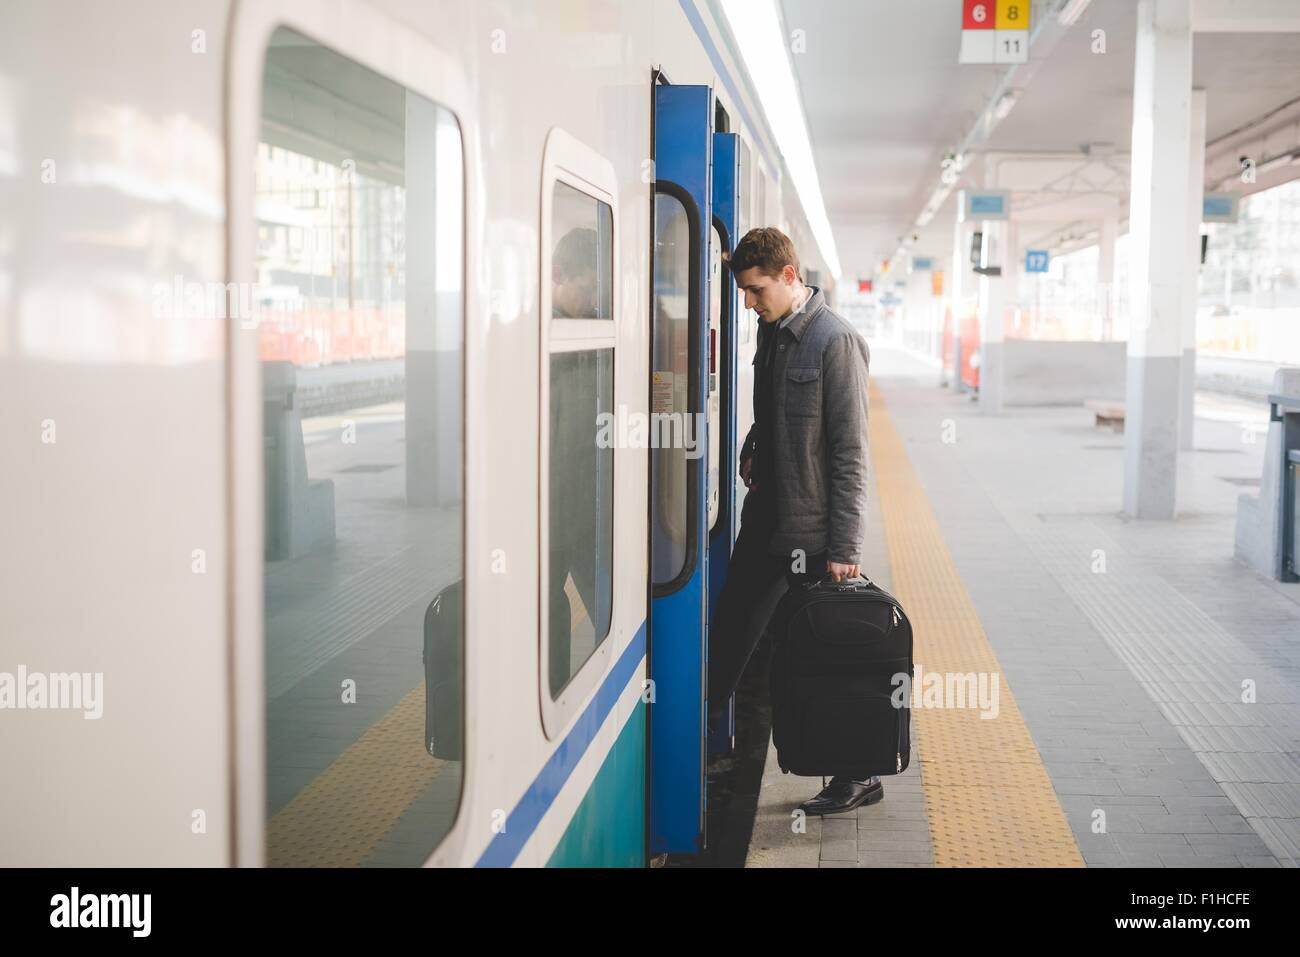 Young businessman commuter boarding train with suitcase. - Stock Image